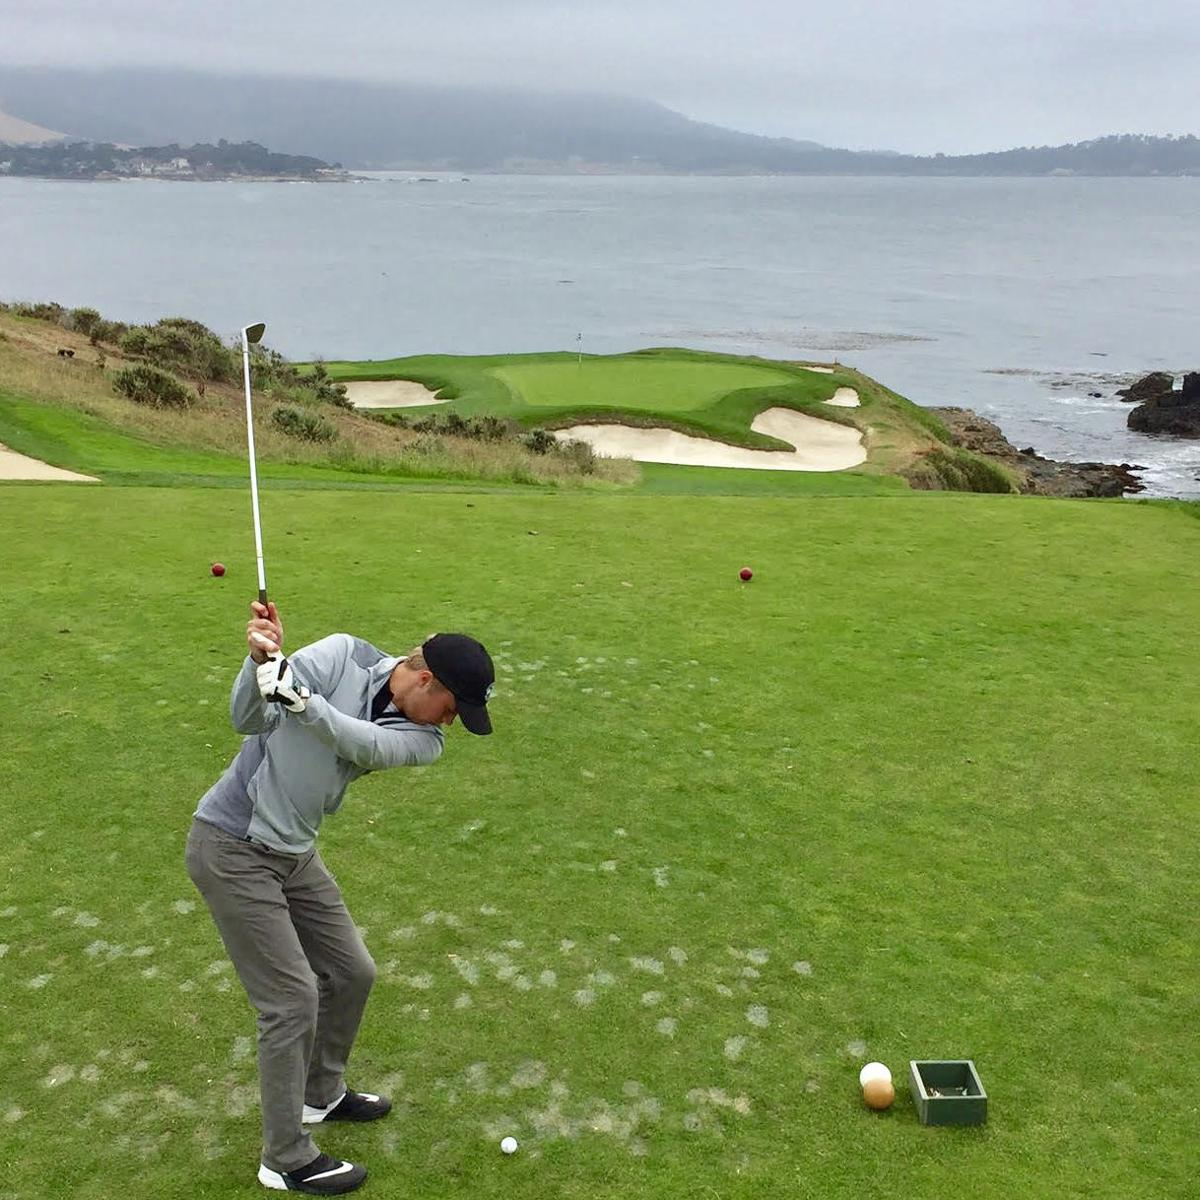 A picture-perfect experience as Eau Claire's Jackson Lindquist pours heart into 'Round of a Lifetime' at Pebble Beach